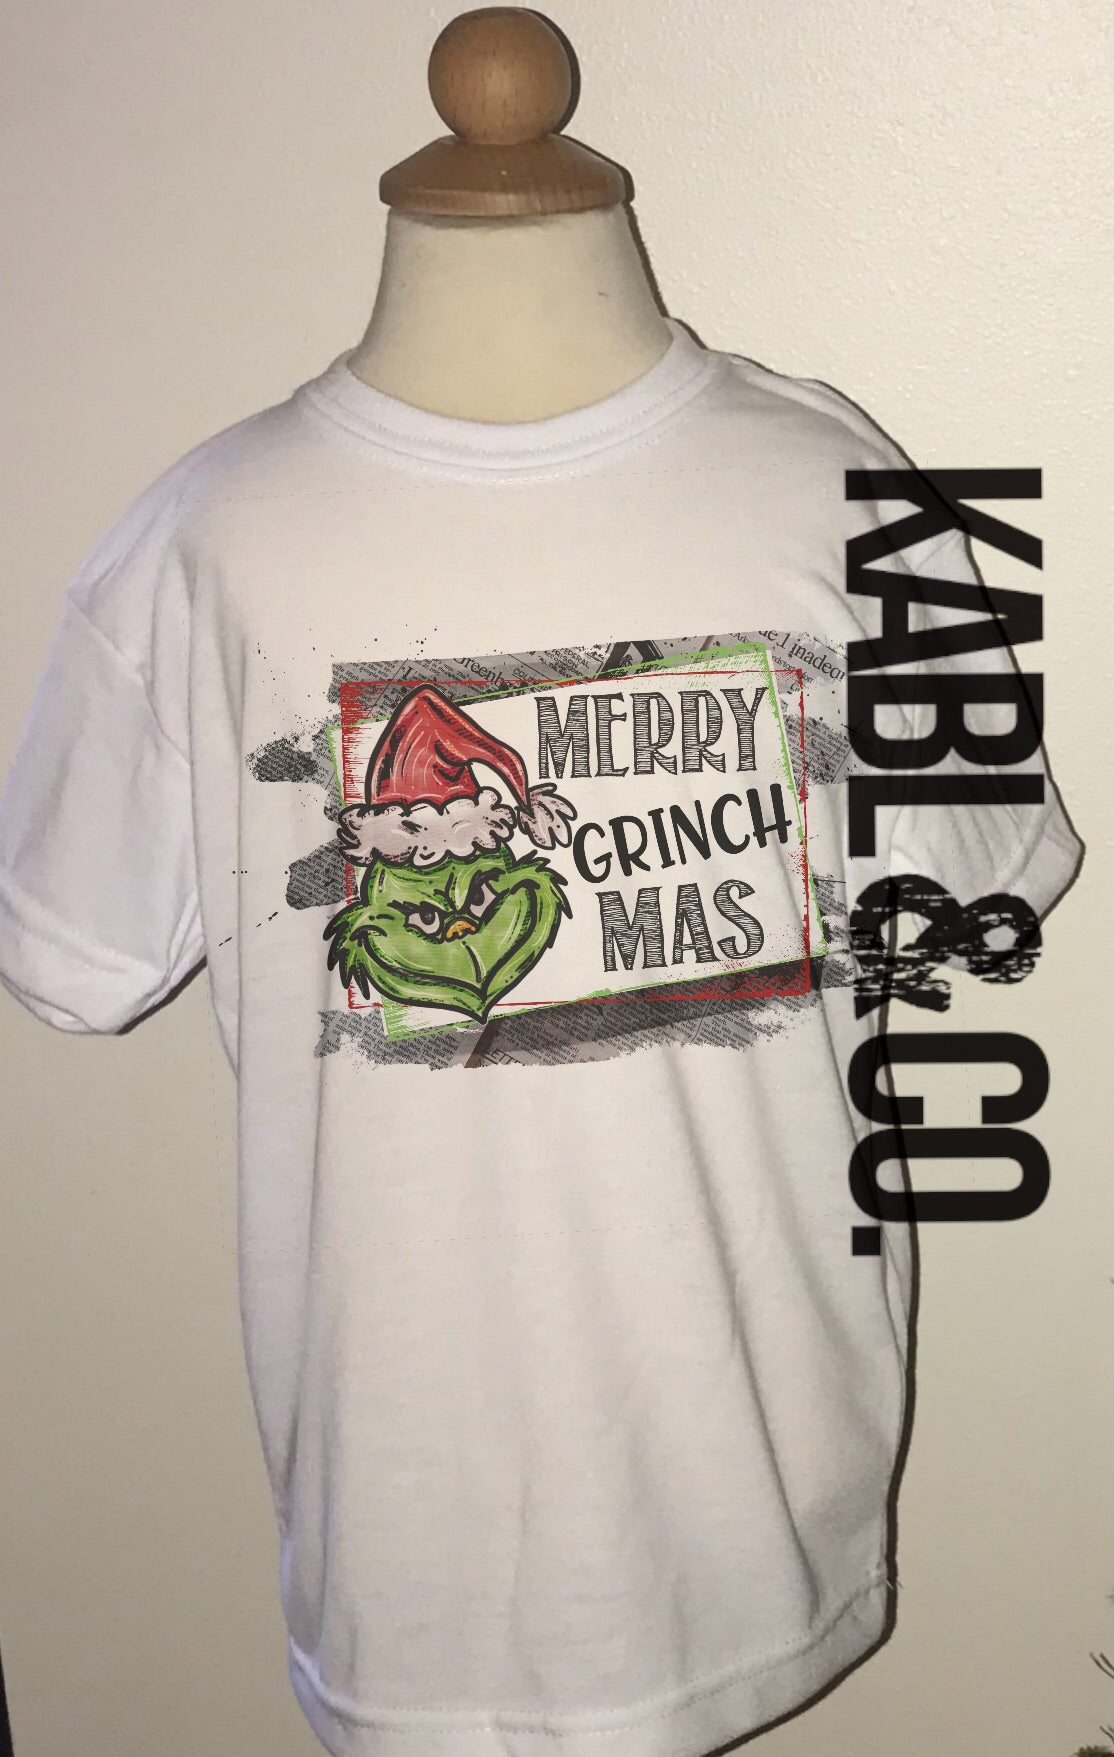 MERRY GRINCH MAS (Child) - Christmas